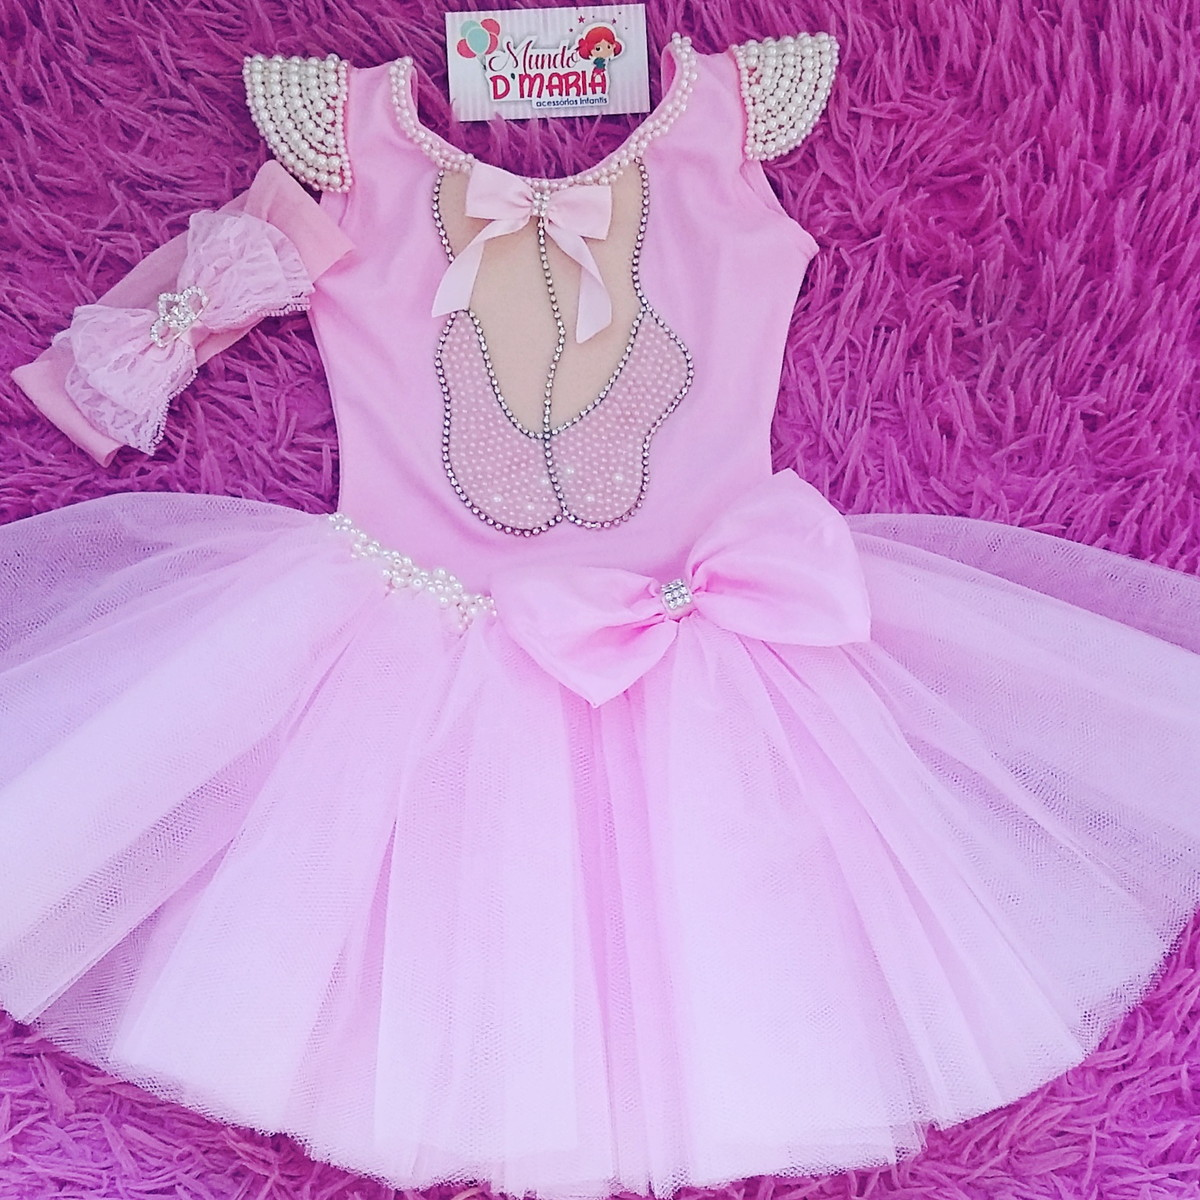 495543027a Tutu Bailarina + Collant Customizado no Elo7